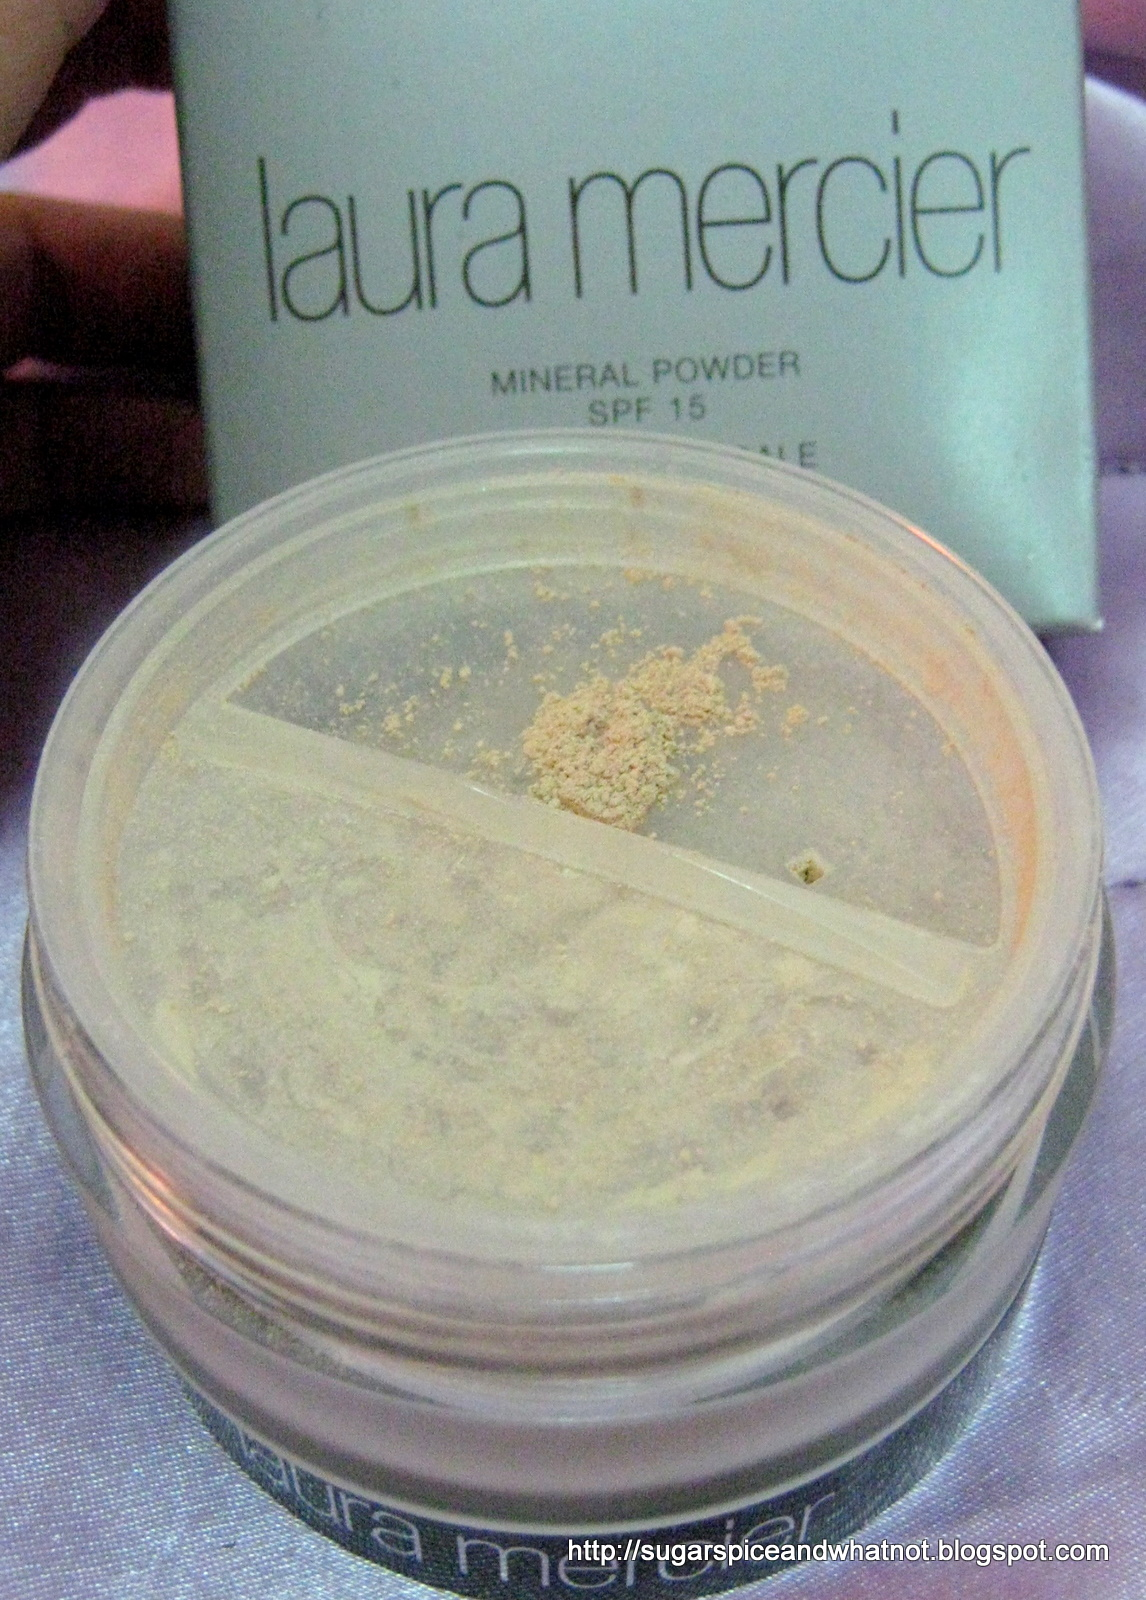 Mineral Powder by Laura Mercier #22